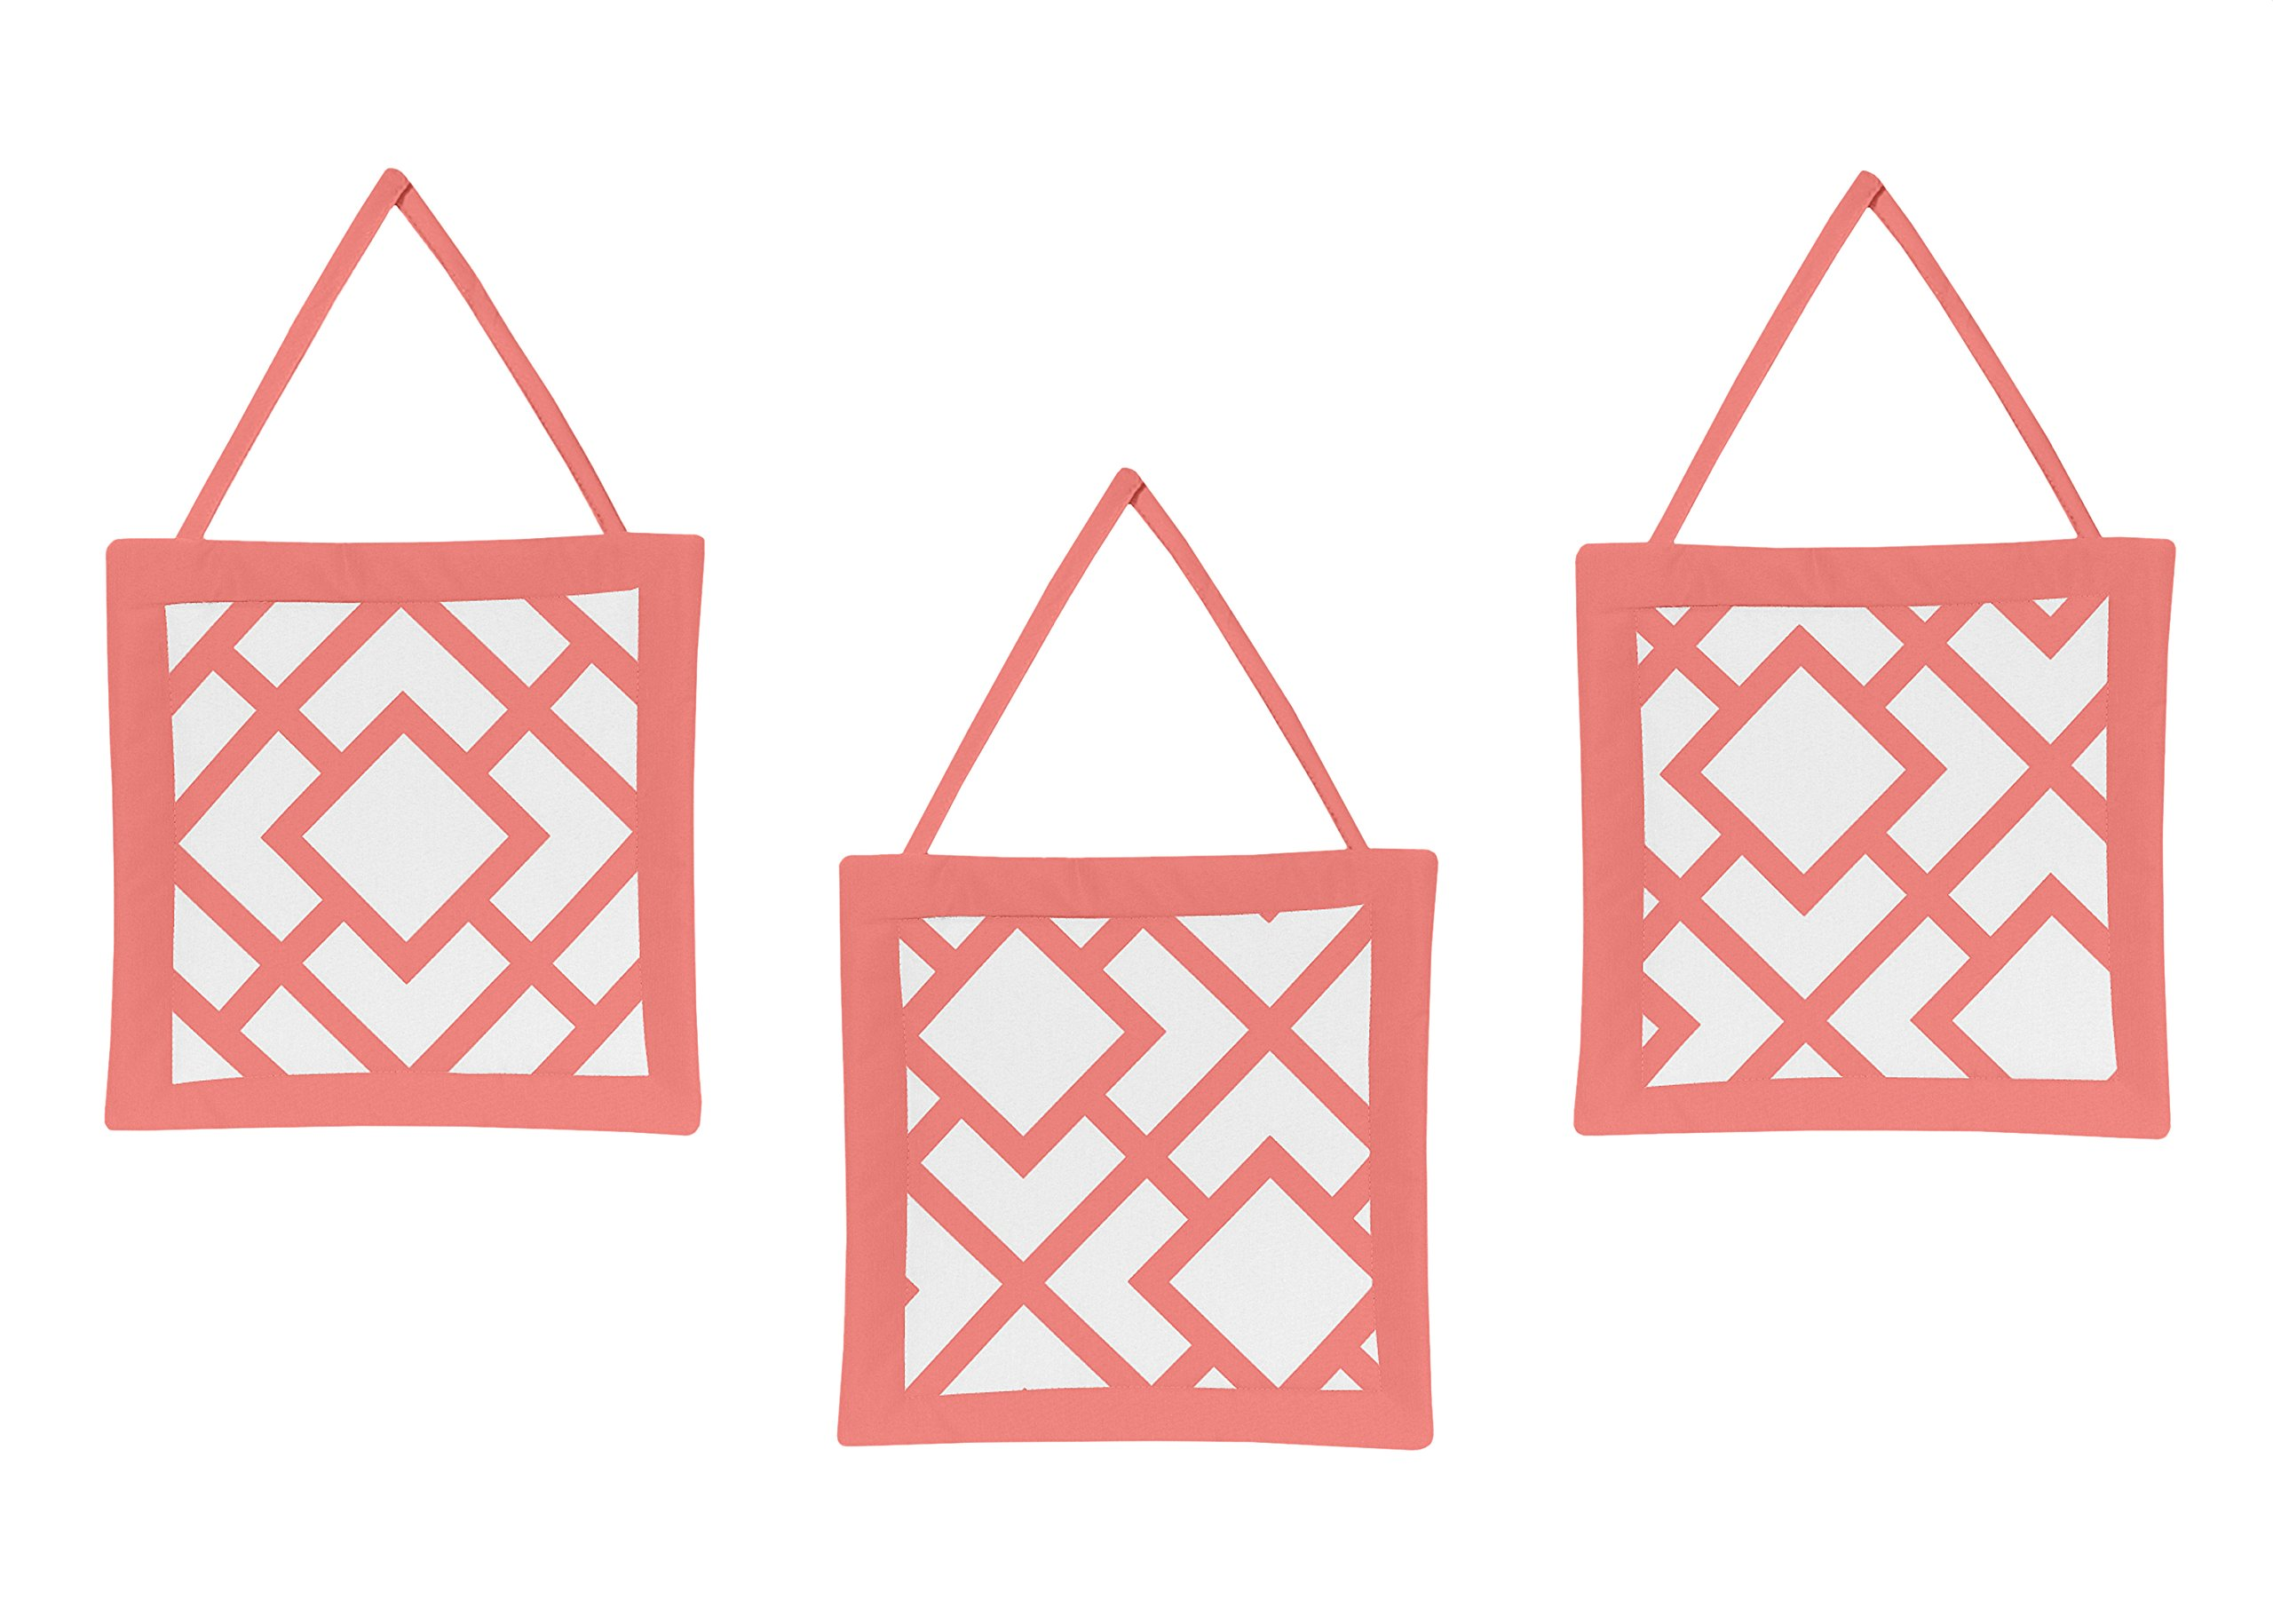 Sweet Jojo Designs Modern White and Coral Diamond Geometric Girls Wall Hanging Accessories